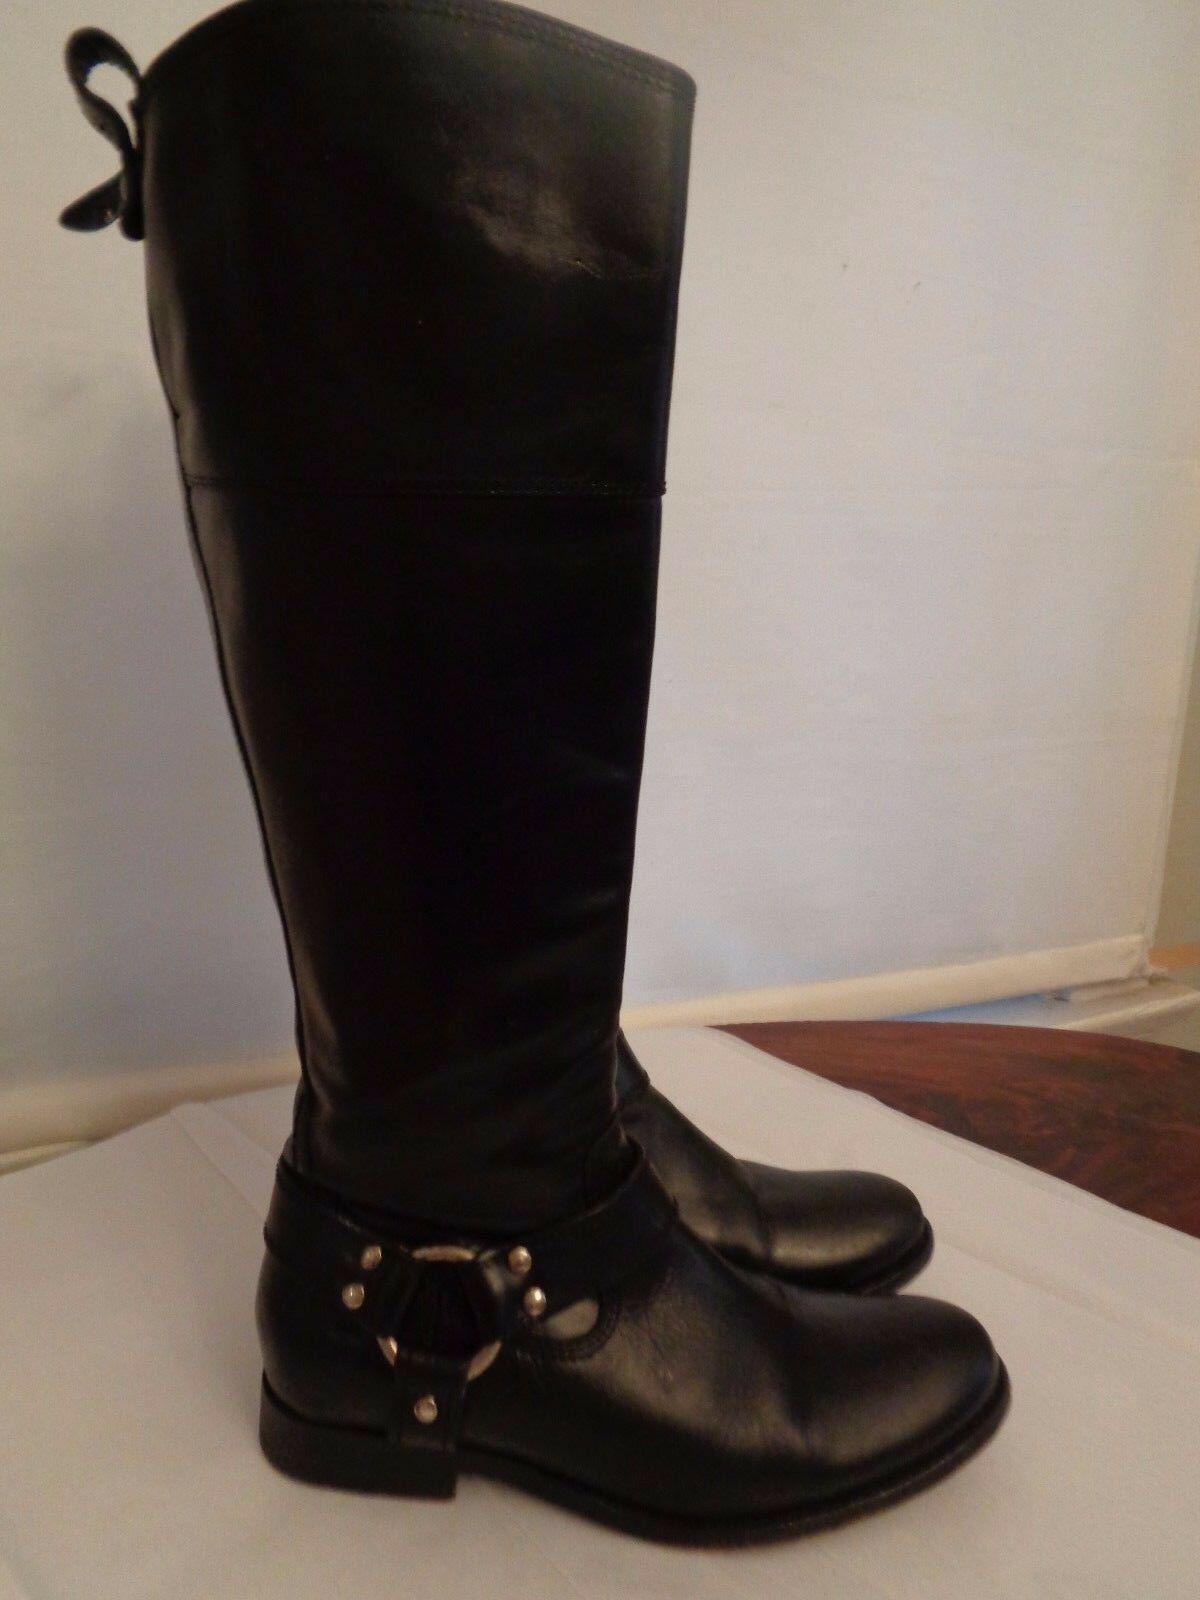 FRYE  Melissa  equestrian riding harness boots 100% leather women's size 6 B